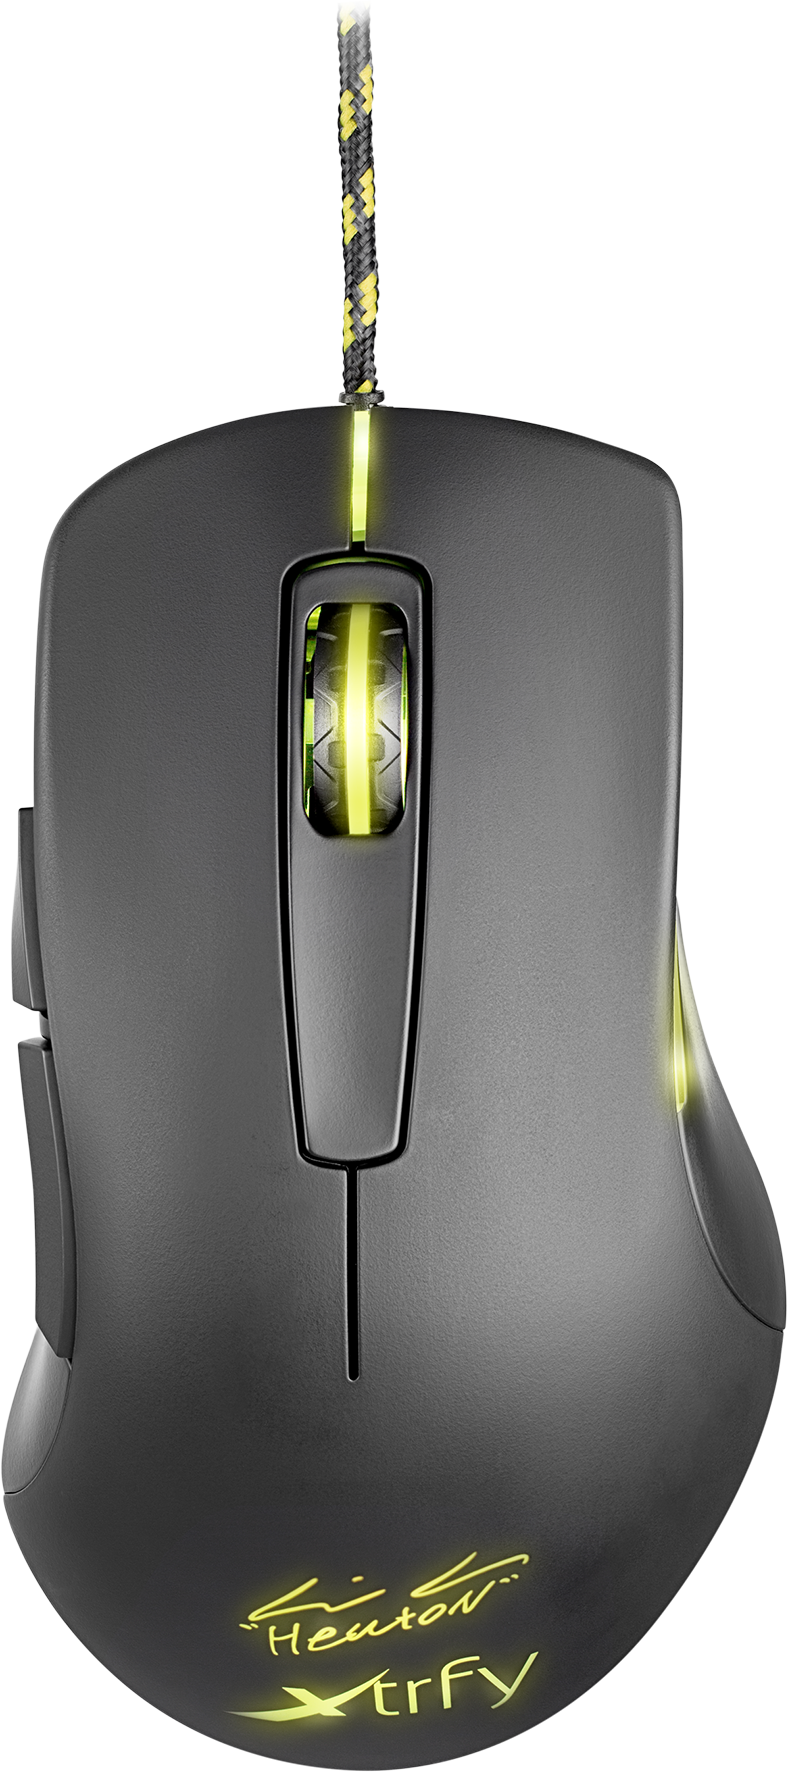 Läs mer om Xtrfy Gaming Mouse M3, HeatoN Edition